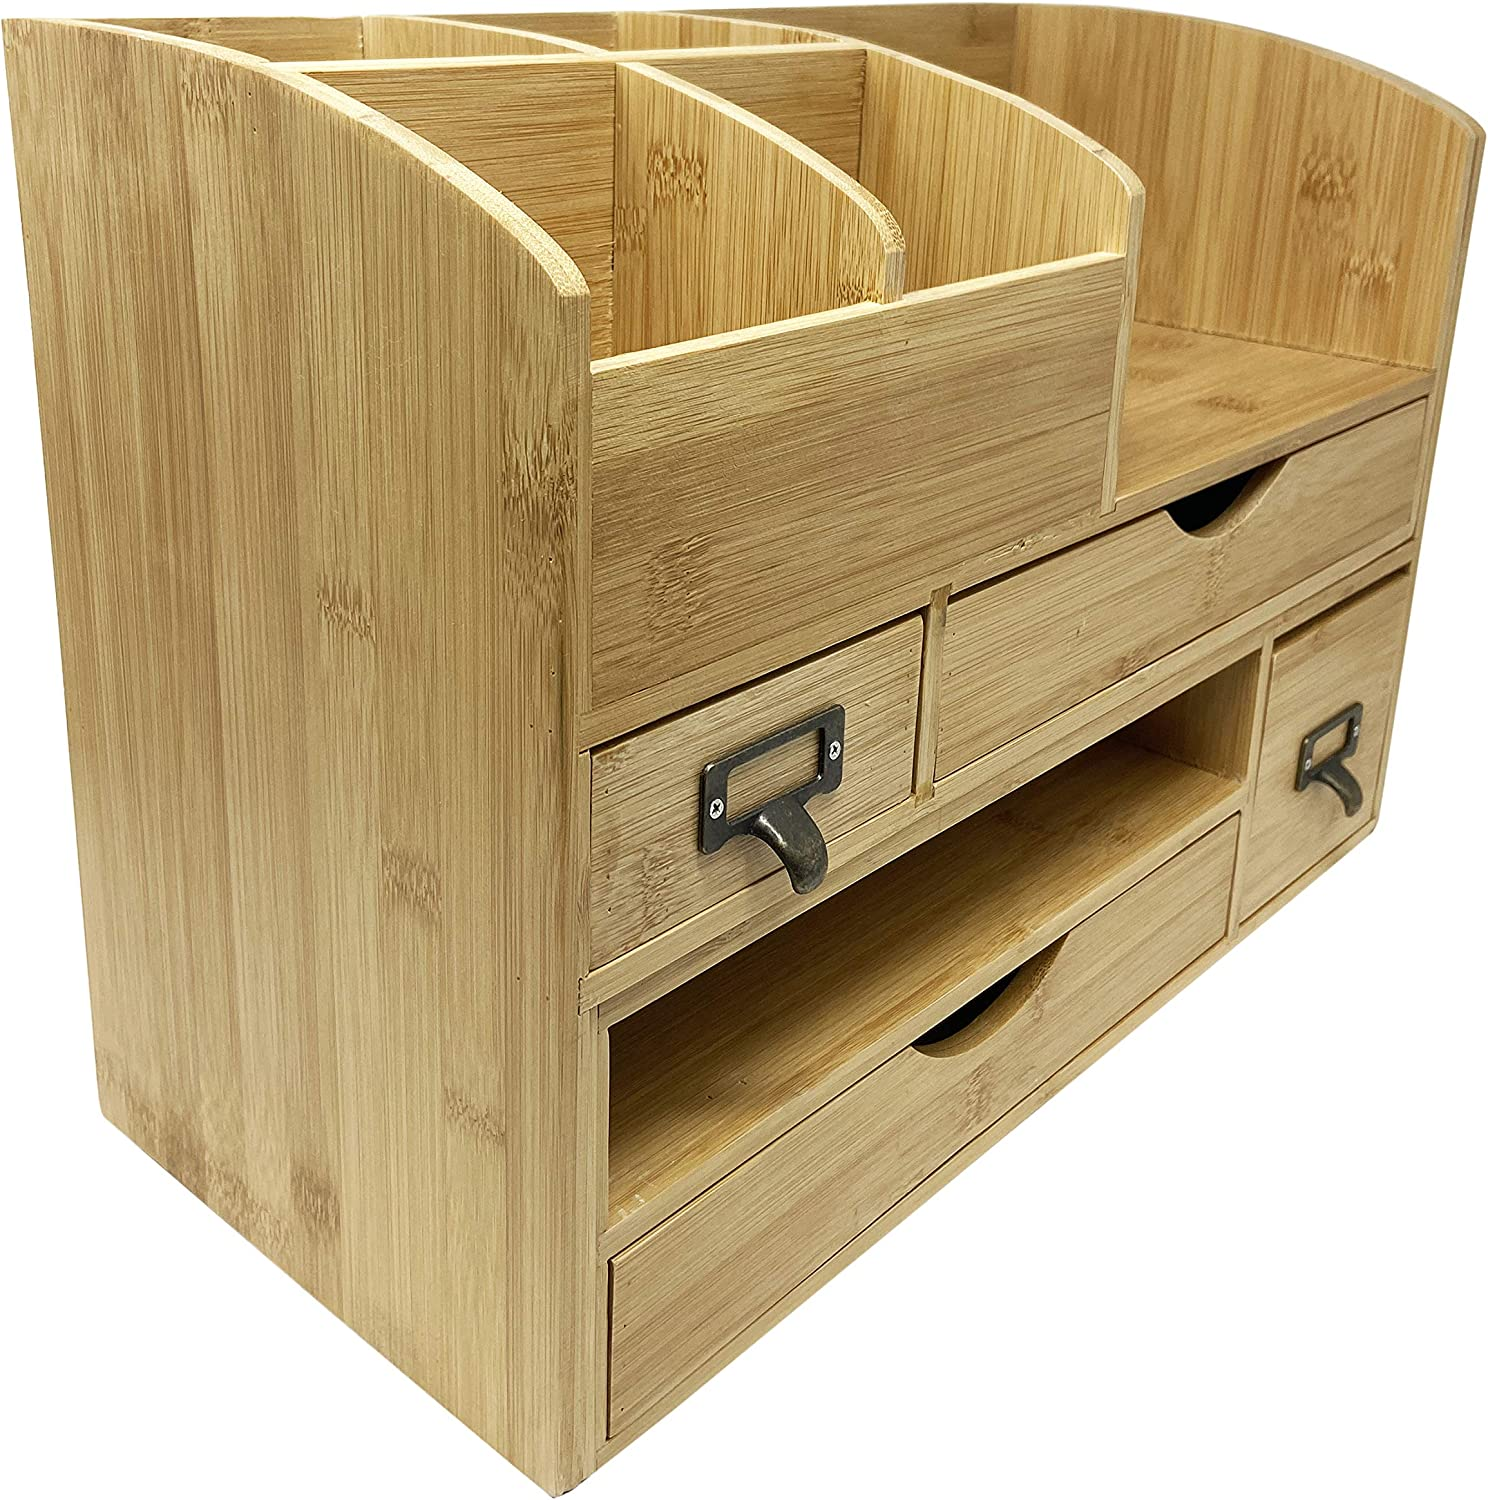 Executive Office Solutions Large Adjustable Wooden Office Desk Organizer for Desktop, Tabletop, or Counter – Wood Storage Shelf Rack – for Office Supplies, Desk Accessories, or Mail - Bamboo (WO13)